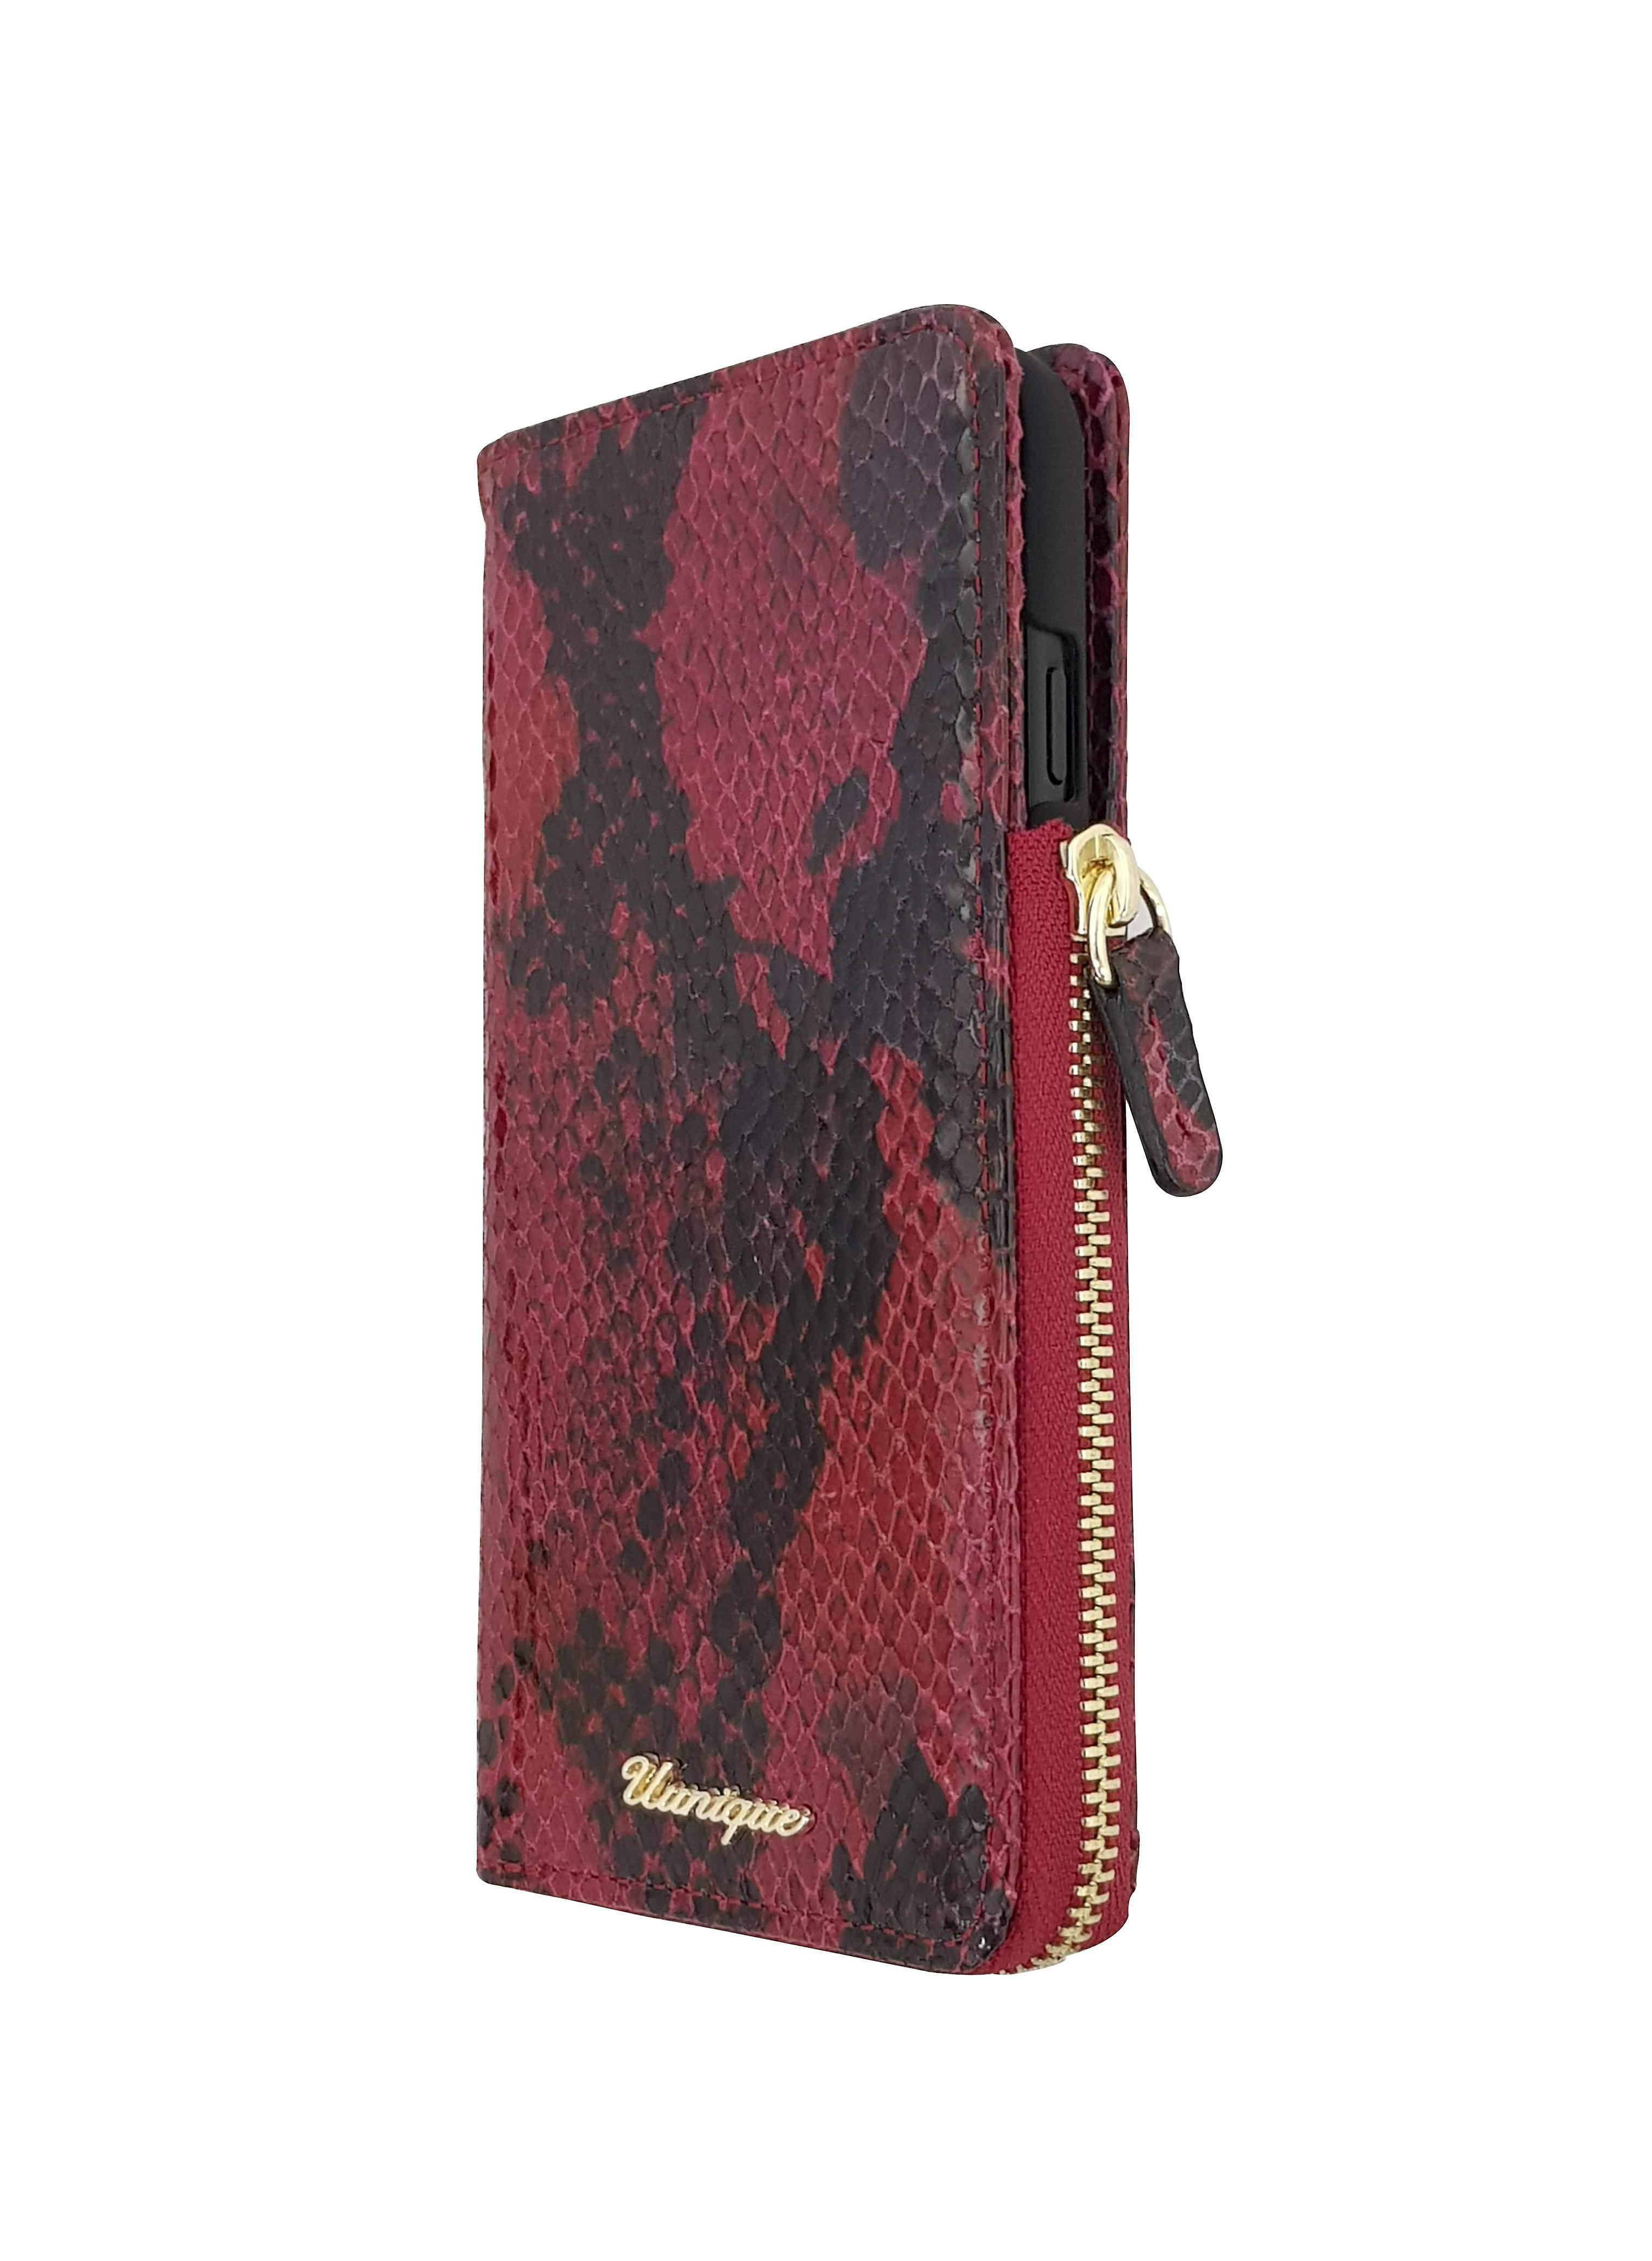 Snake Red Leather 2-in-1 Wallet iPhone 8 /7 Case